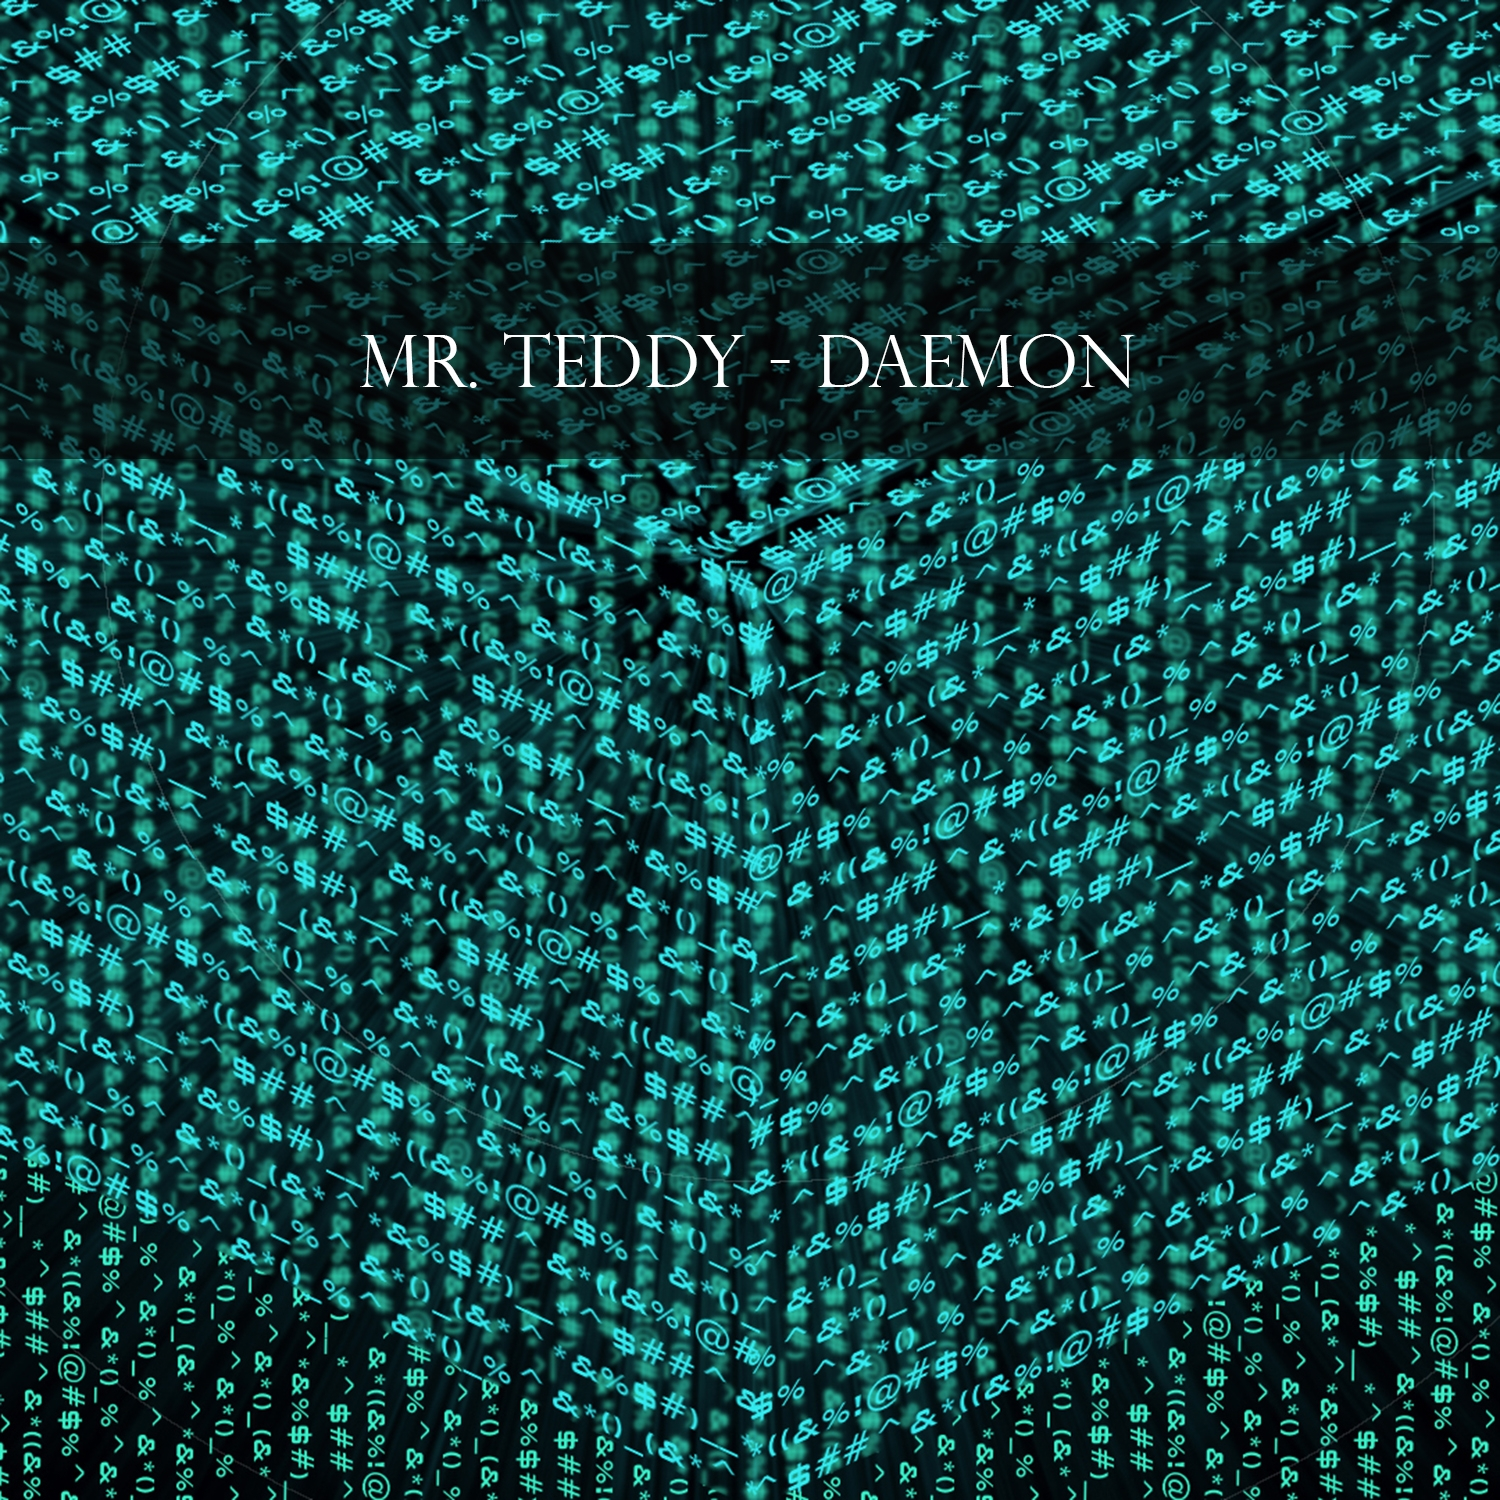 Mr. Teddy - Daemon (Original Mix)